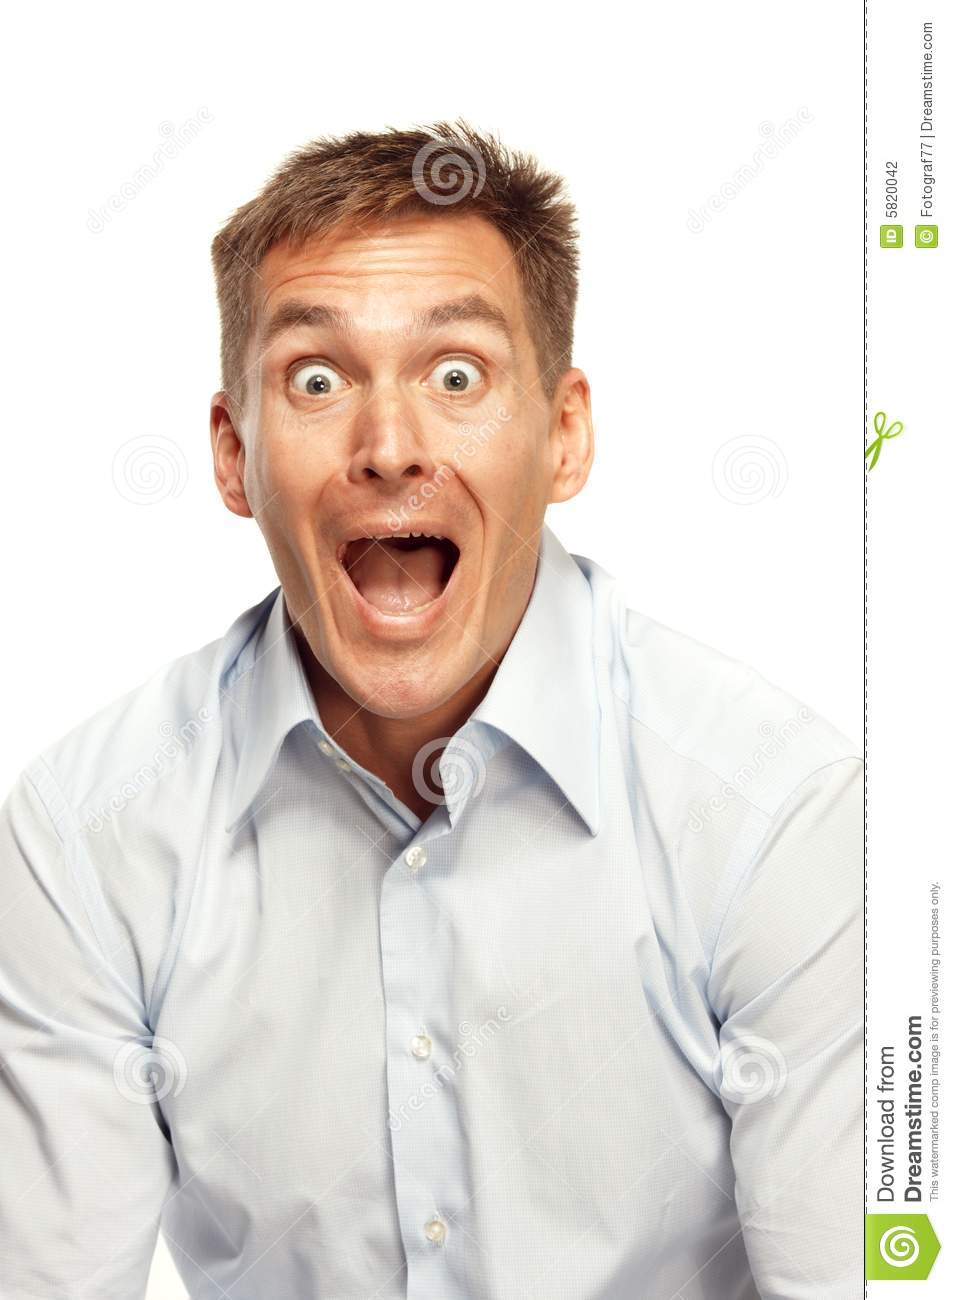 Excited man yelling